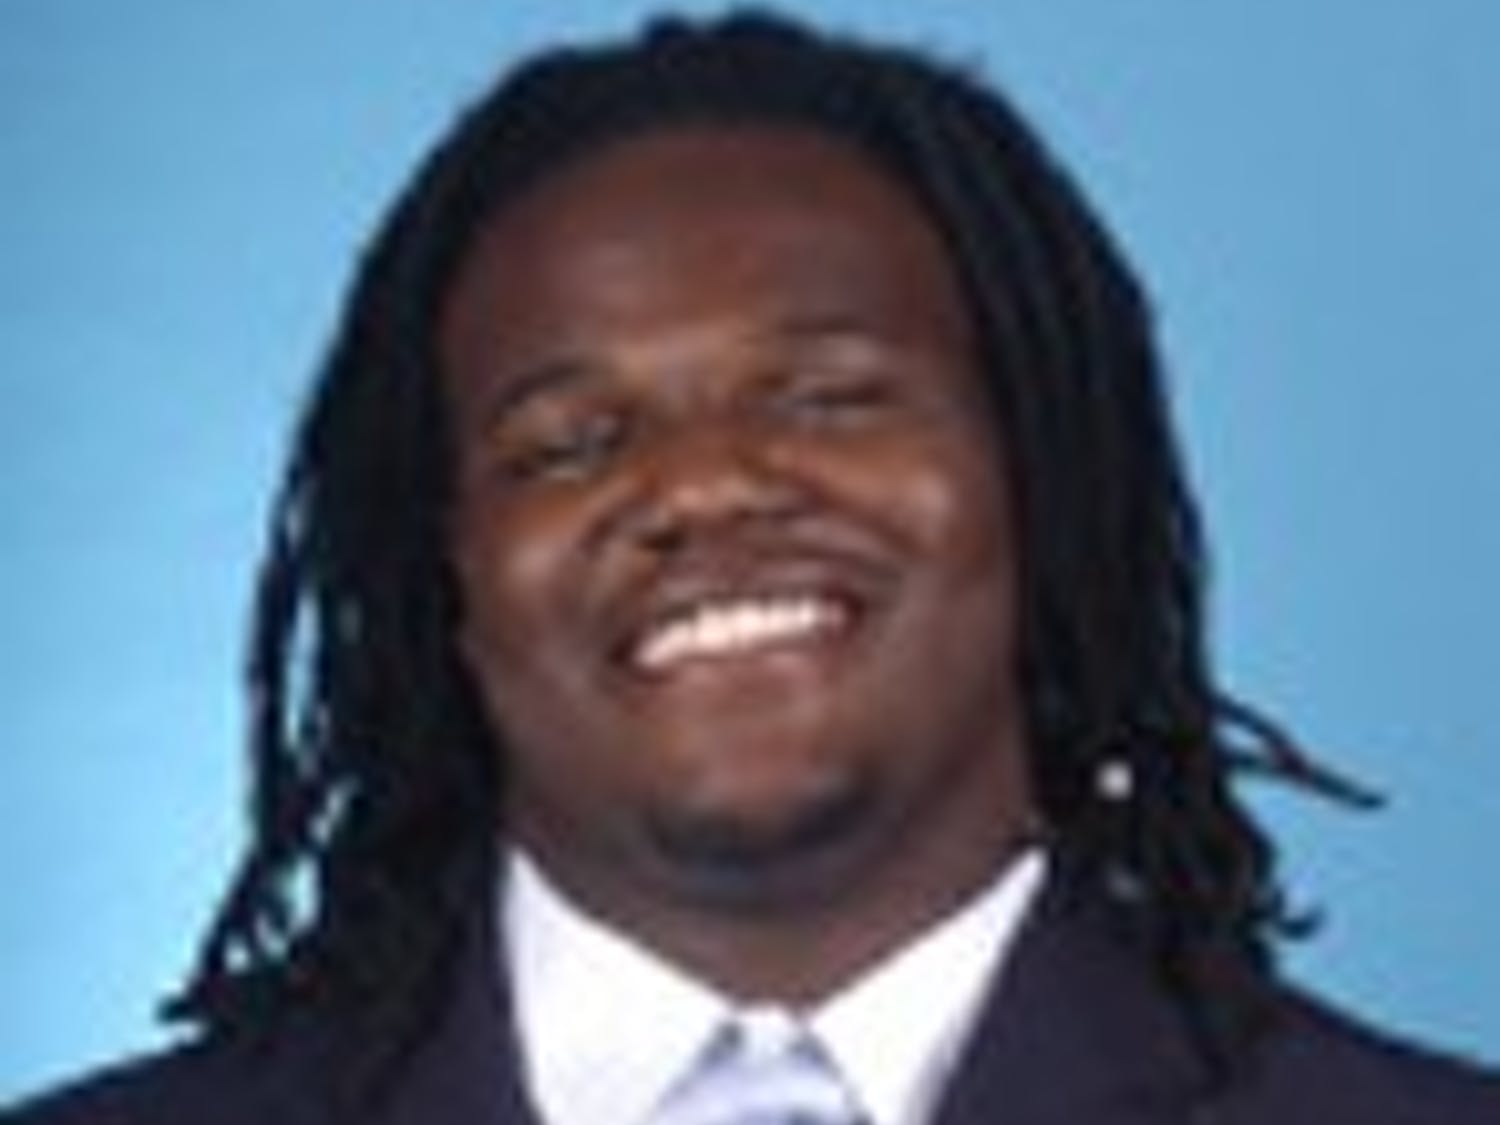 Former UNC player Marvin Austin is represented by Miami lawyer Christopher Lyons.